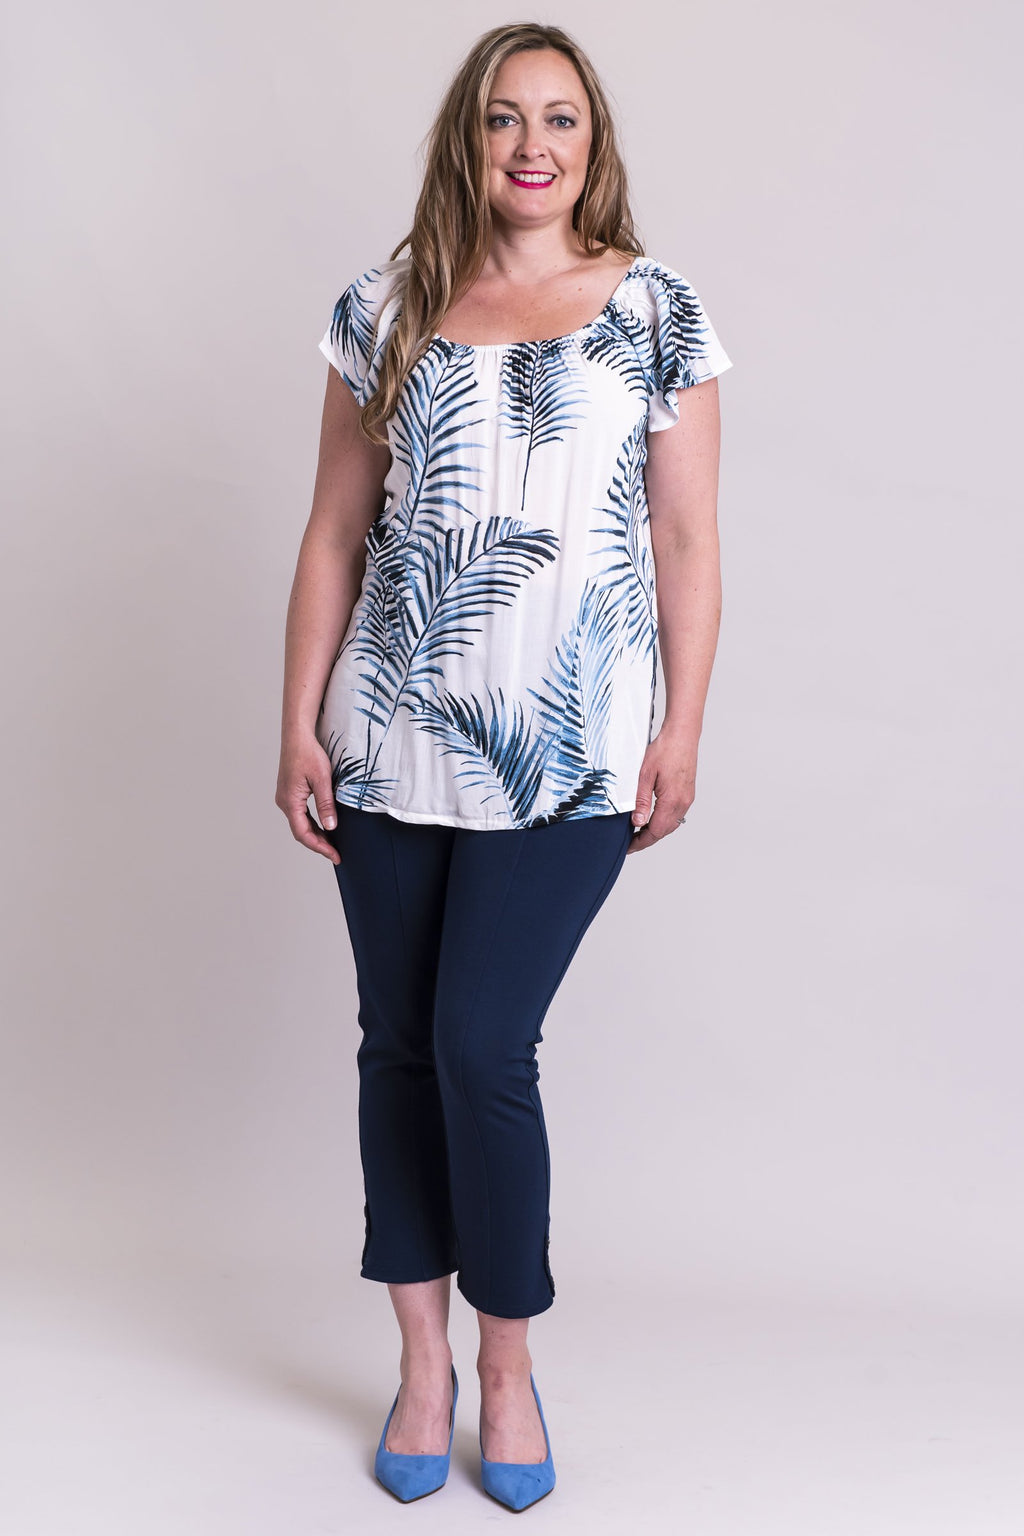 Petra Top, Palm Leaf, Rayon - Blue Sky Clothing Co